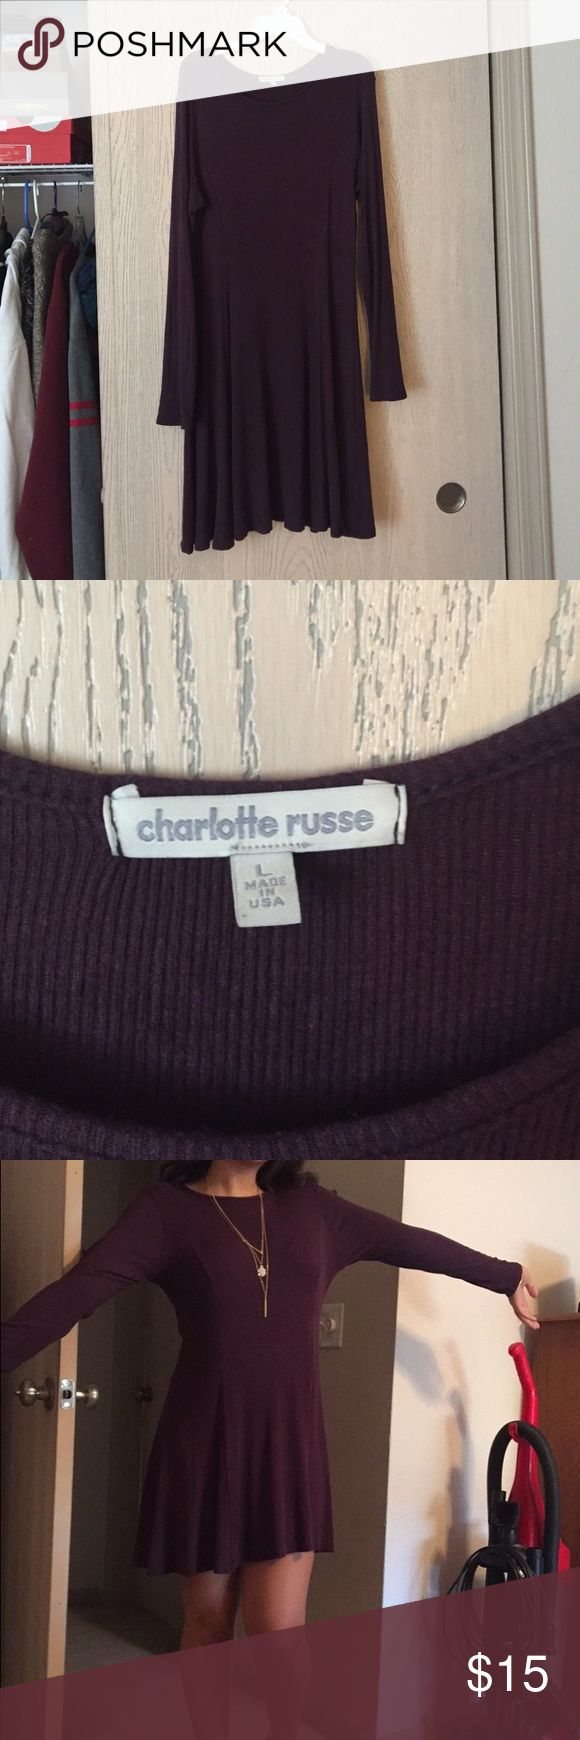 charlotte russe dress PLUM DRESS WORN ONCE FOR A DANCE -- PERECT CONDITION Charlotte Russe Dresses Mini